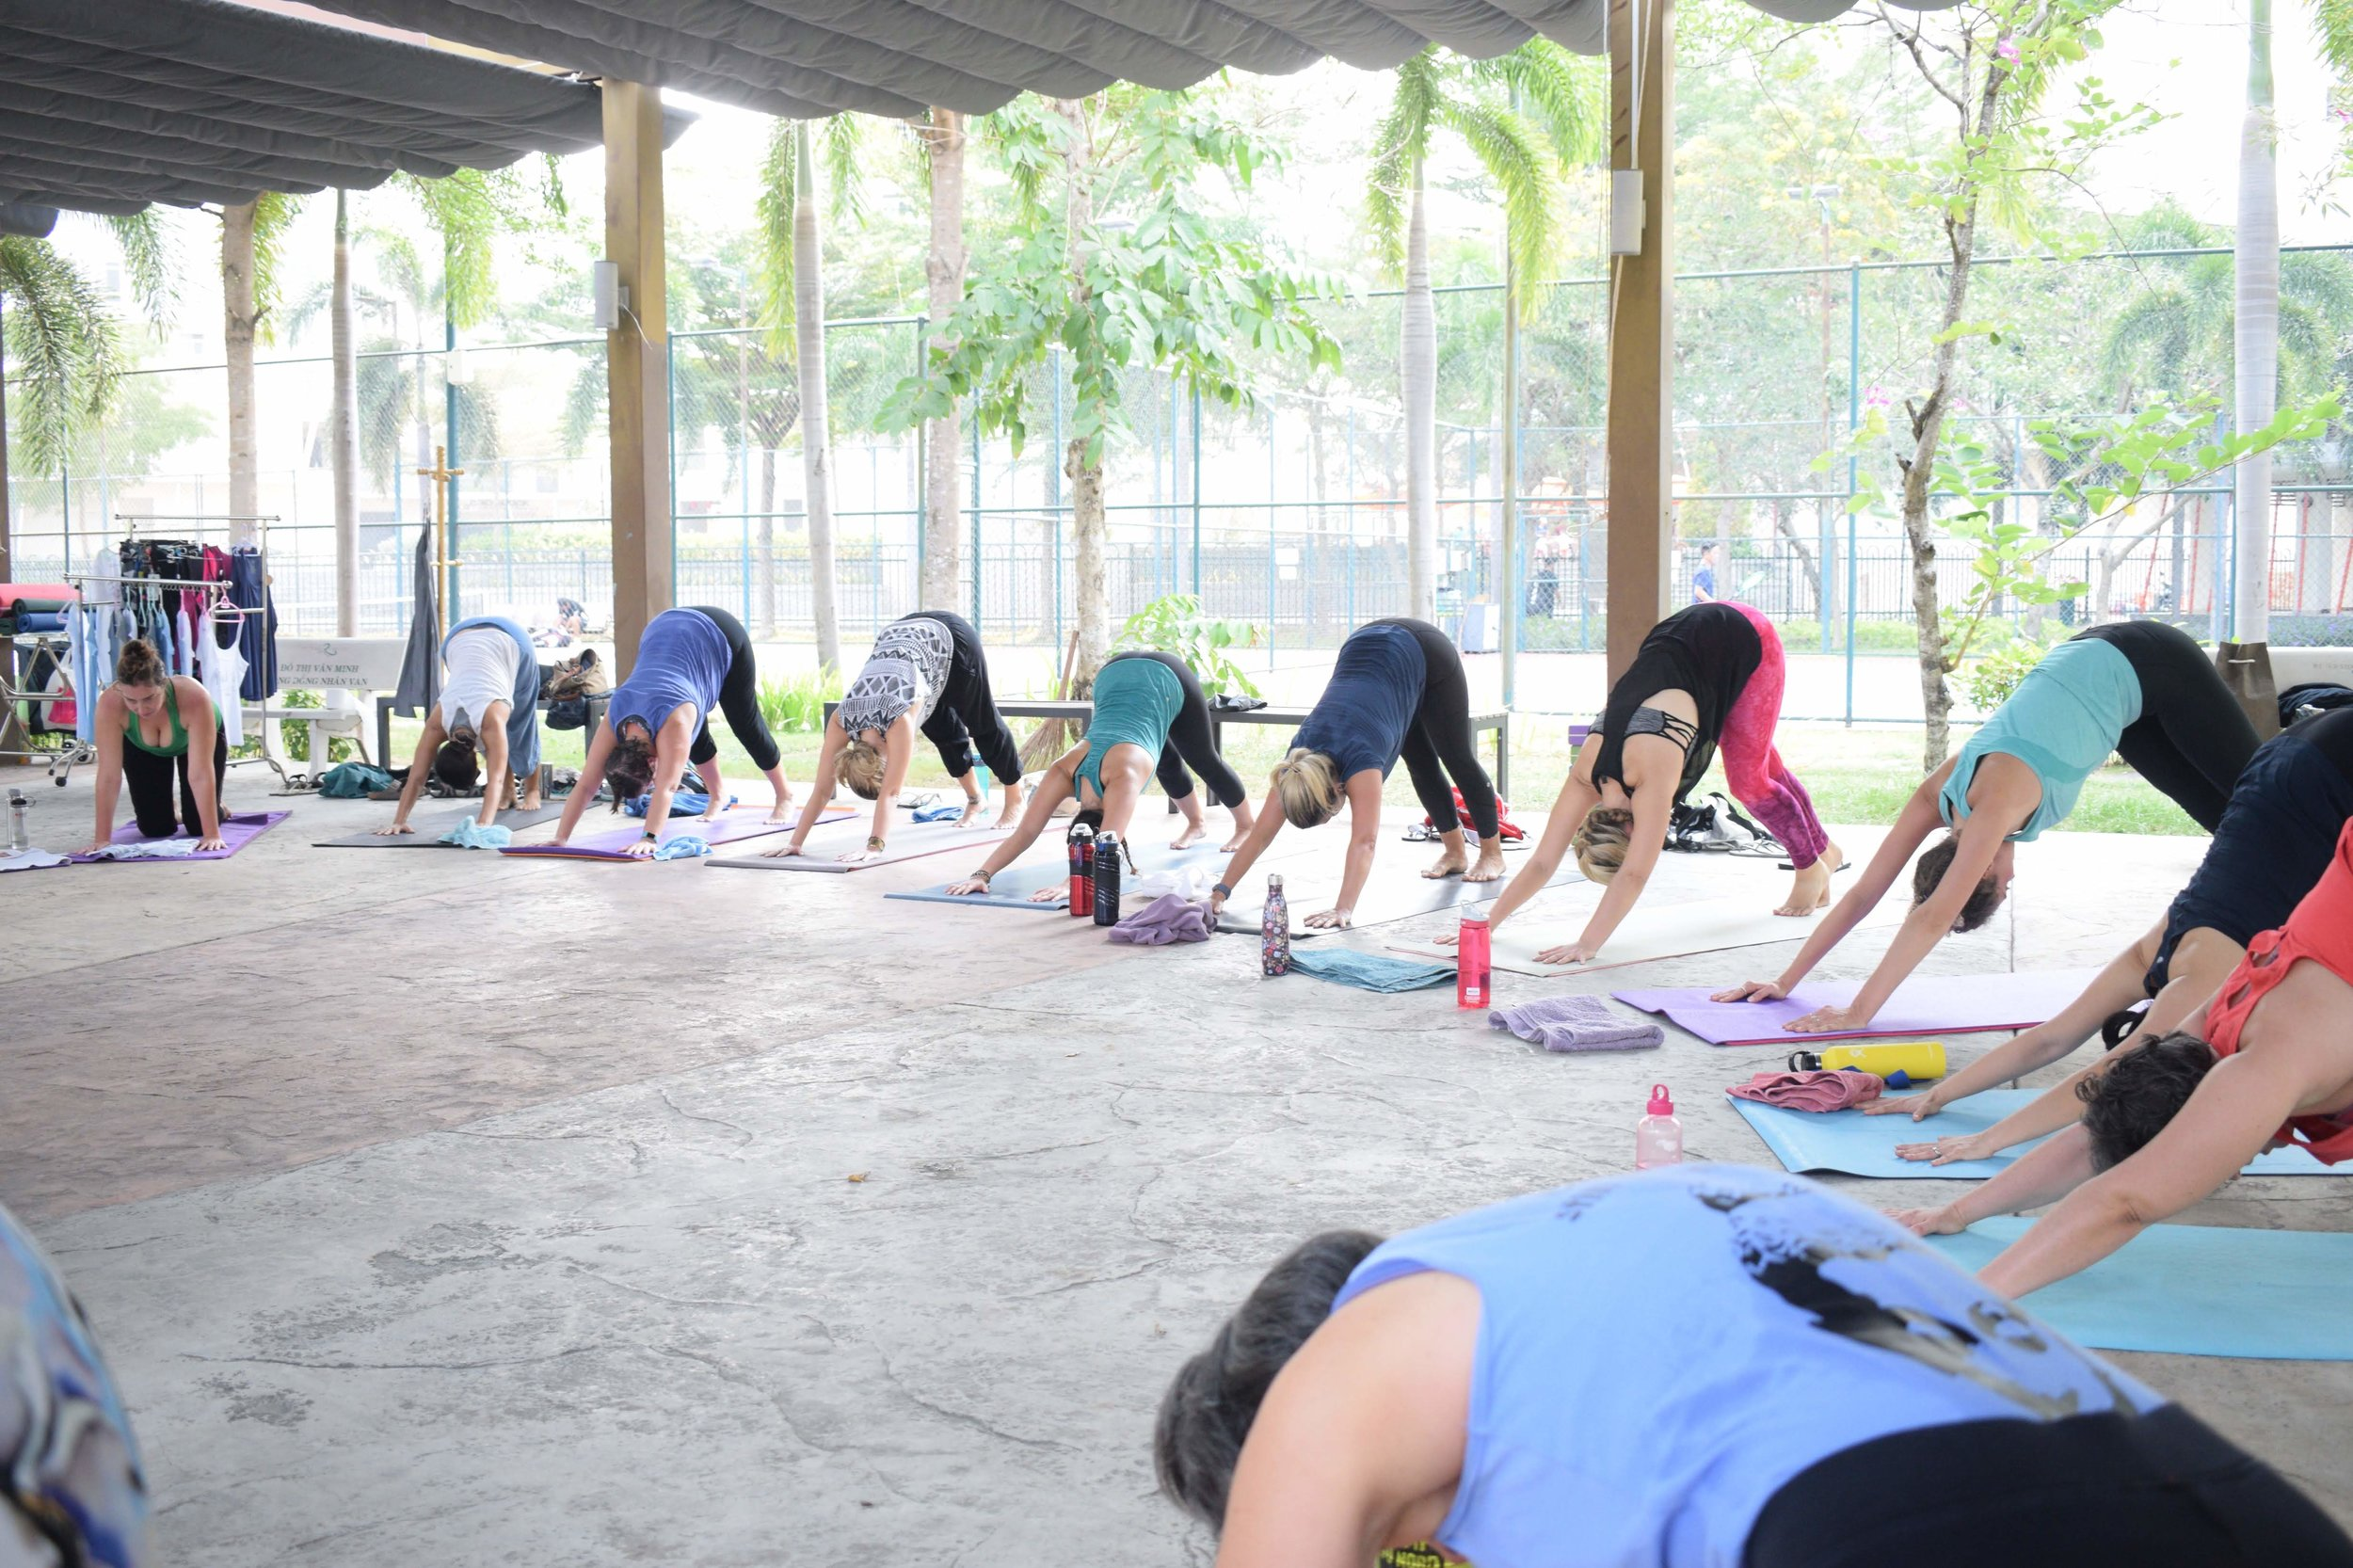 108-sun-salutations-yoga-joy-saigon-downward-dog.jpg